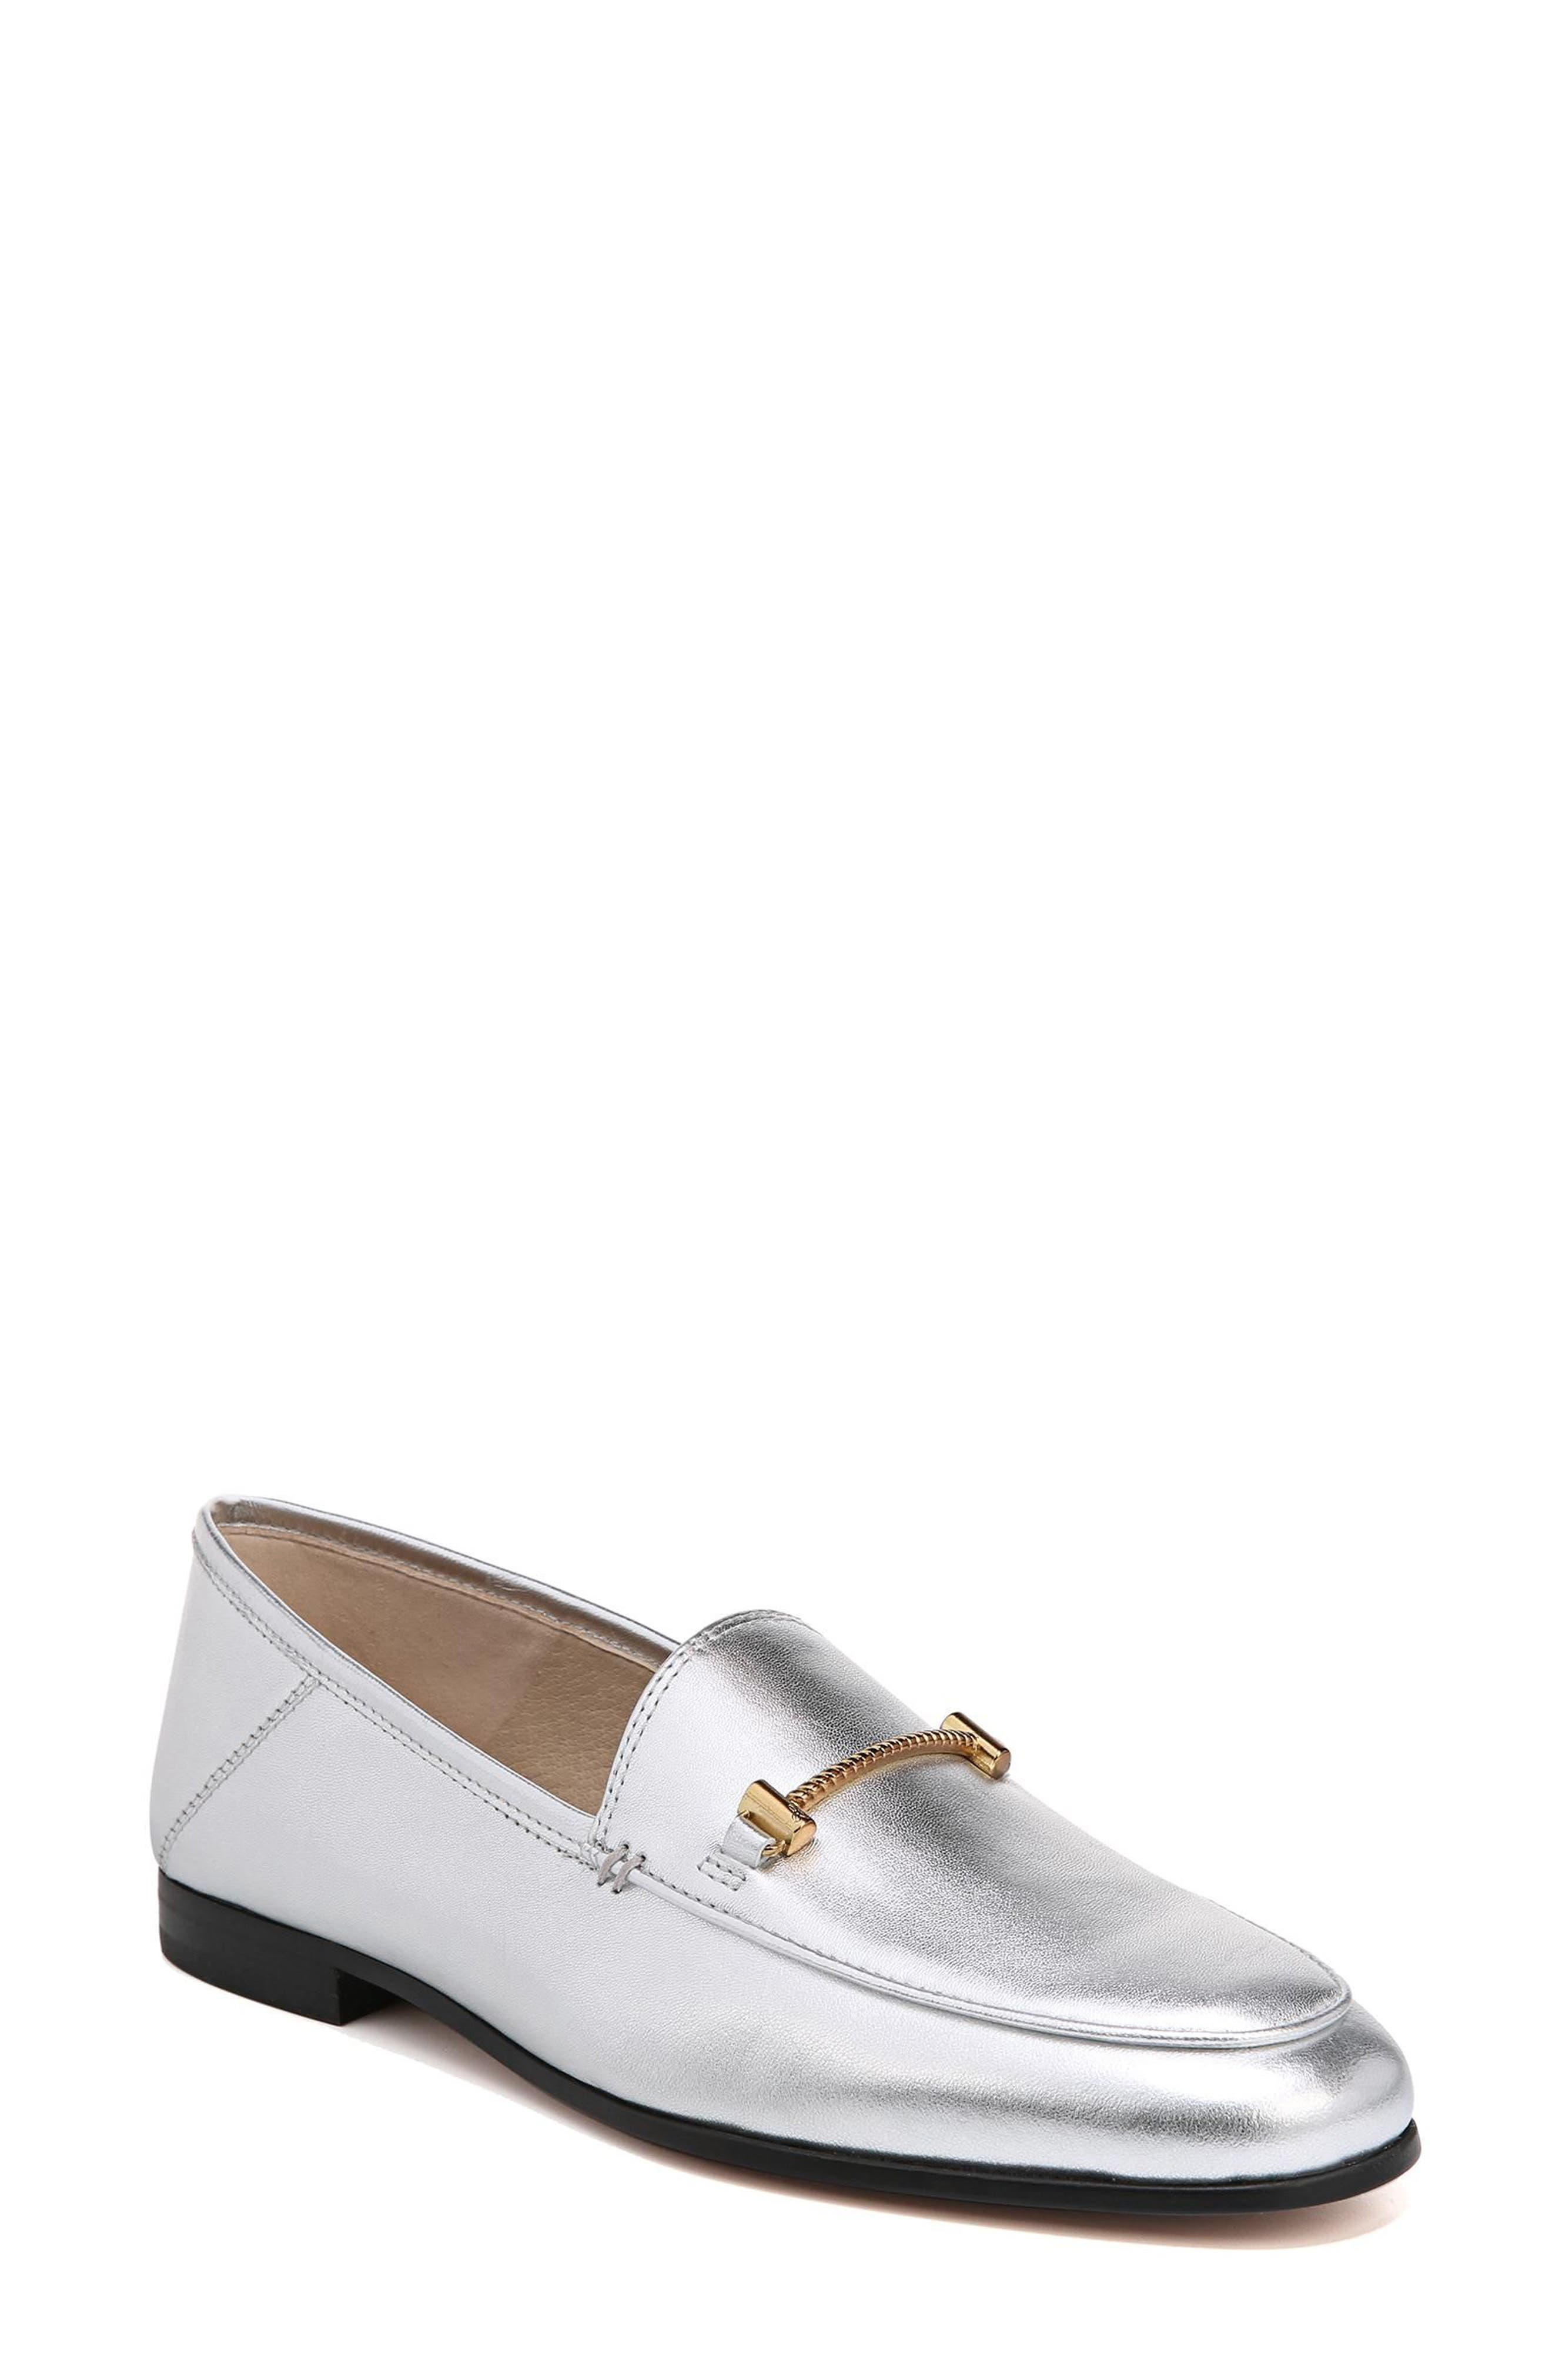 Lior Loafer,                             Main thumbnail 1, color,                             SOFT SILVER METALLIC LEATHER